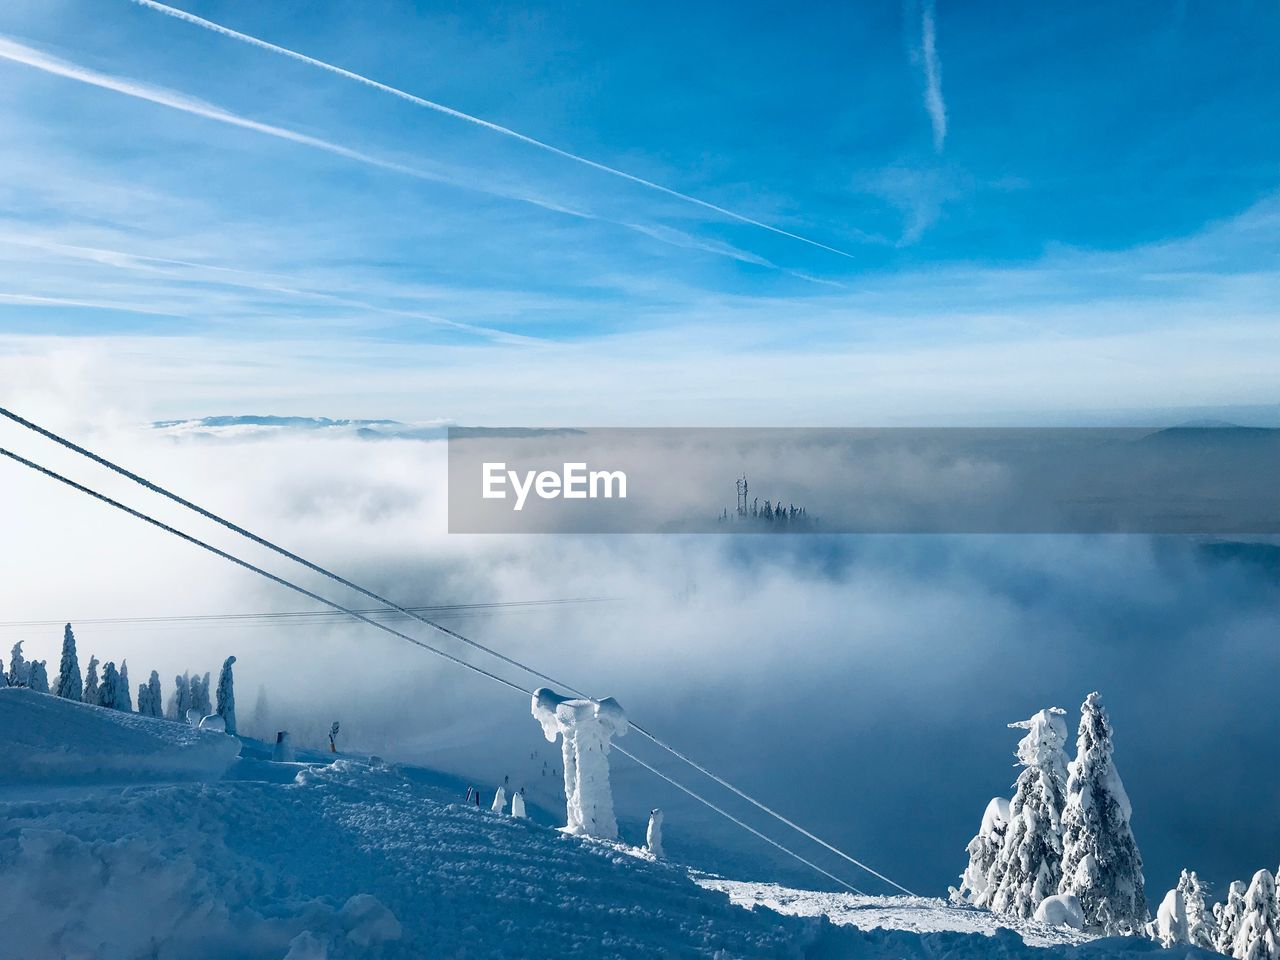 sky, cloud - sky, cold temperature, winter, scenics - nature, nature, snow, beauty in nature, connection, tranquil scene, mountain, transportation, day, tranquility, no people, cable, non-urban scene, environment, white color, outdoors, vapor trail, snowcapped mountain